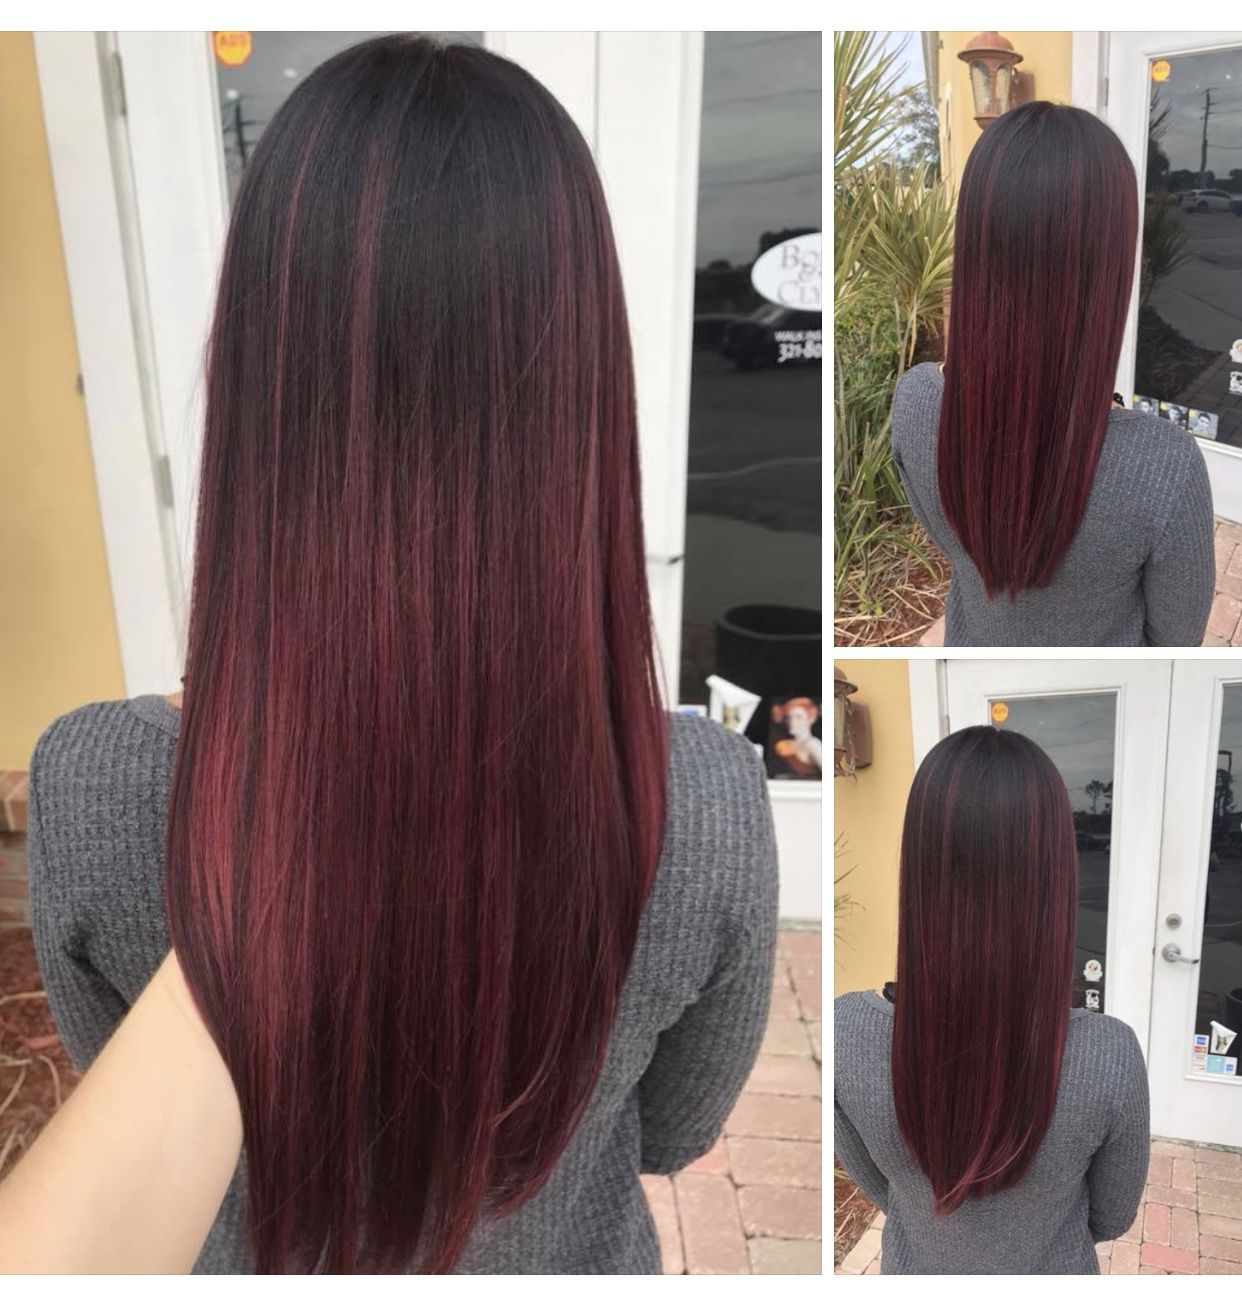 Love my new red / purple hair color customized just for me